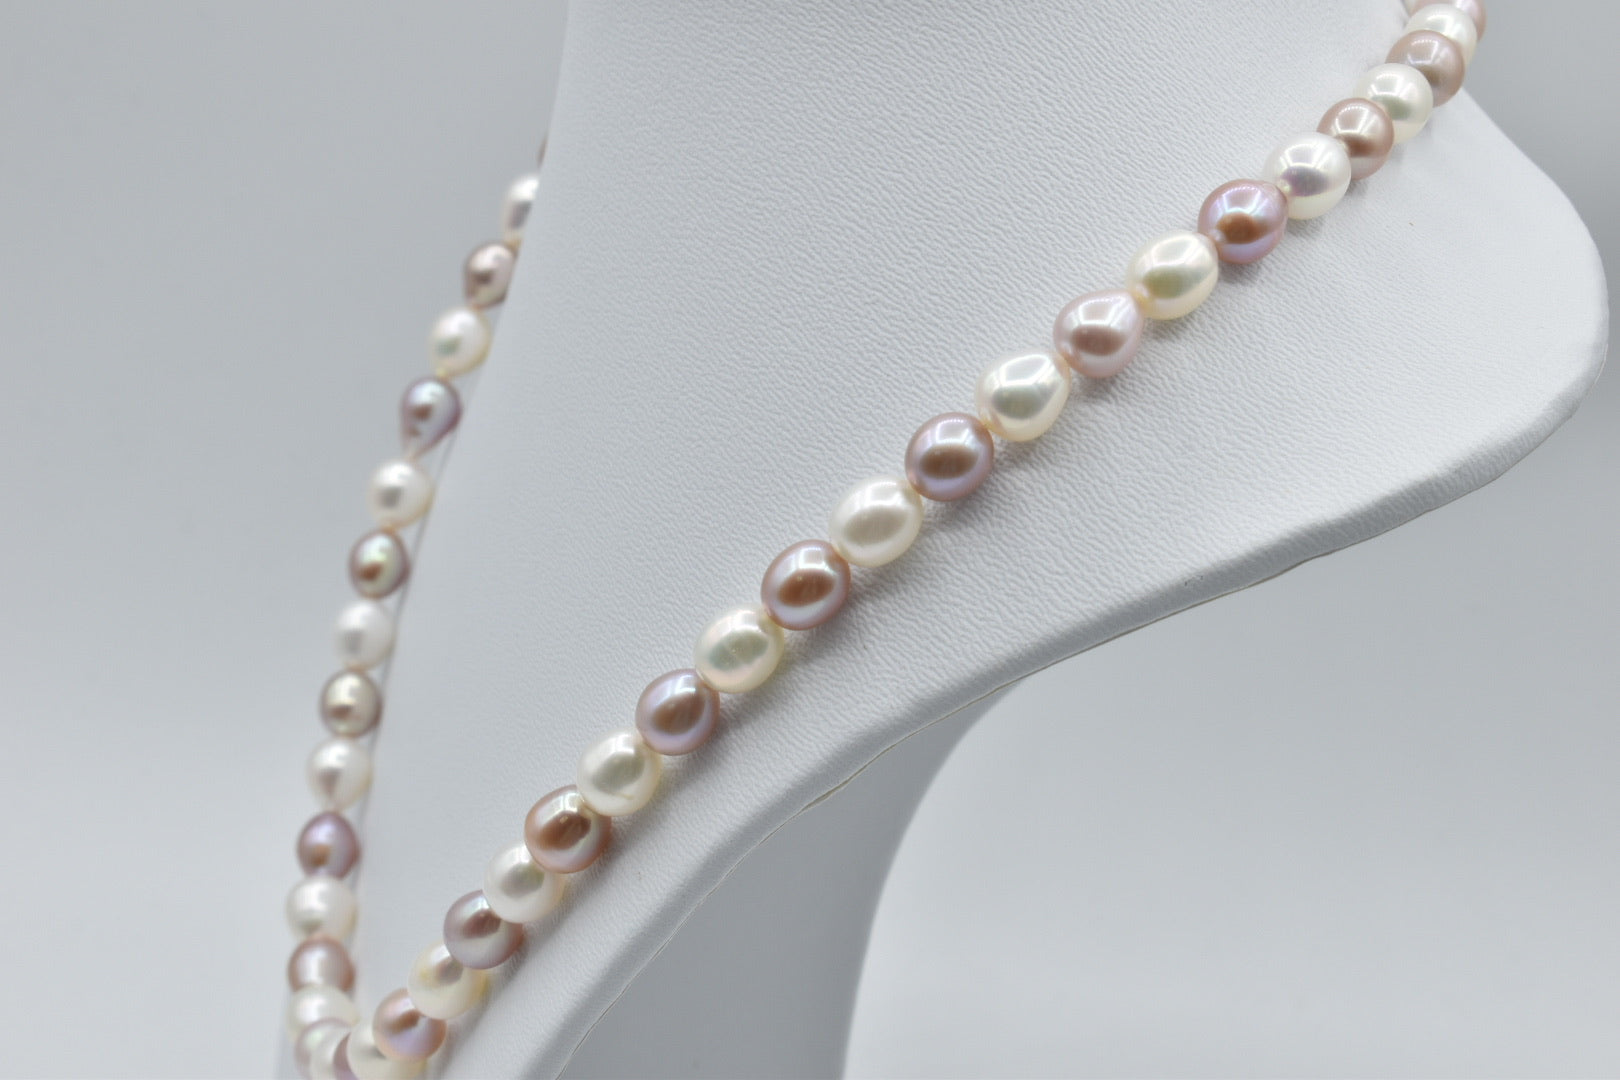 White And Pink Freshwater Multicolor Oval Pearl Necklace, 20 inches, 7.5-8.5mm